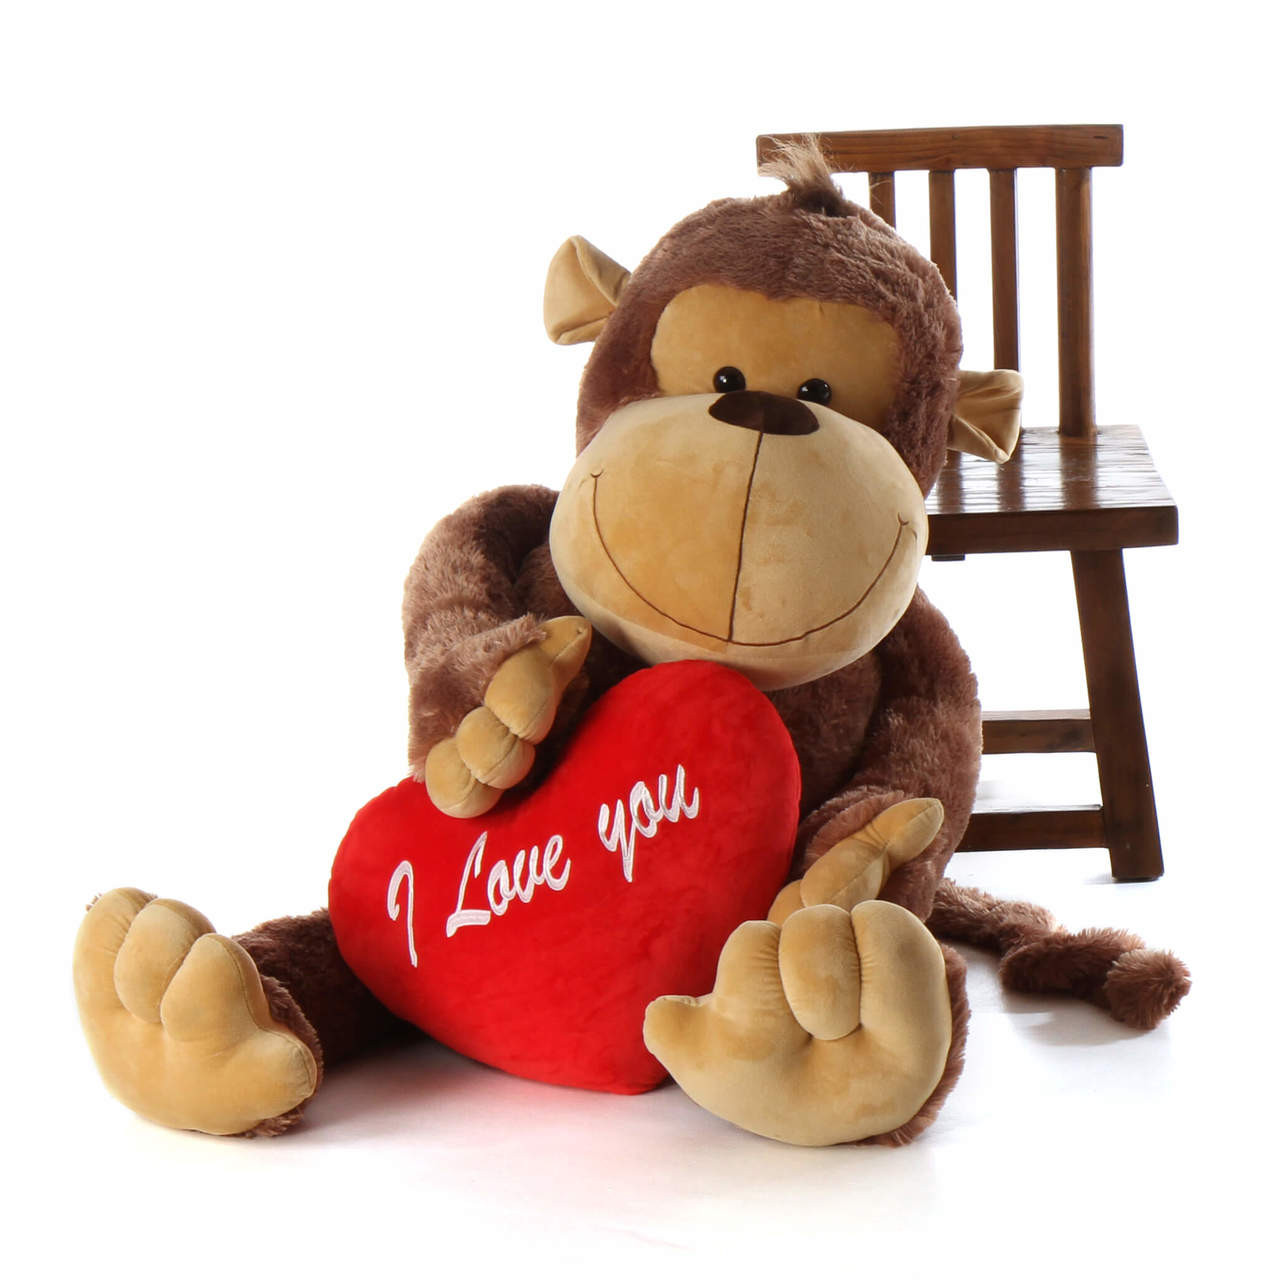 5ft Life Size Stuffed Monkey Big Daddy With I Love You Heart Pillow